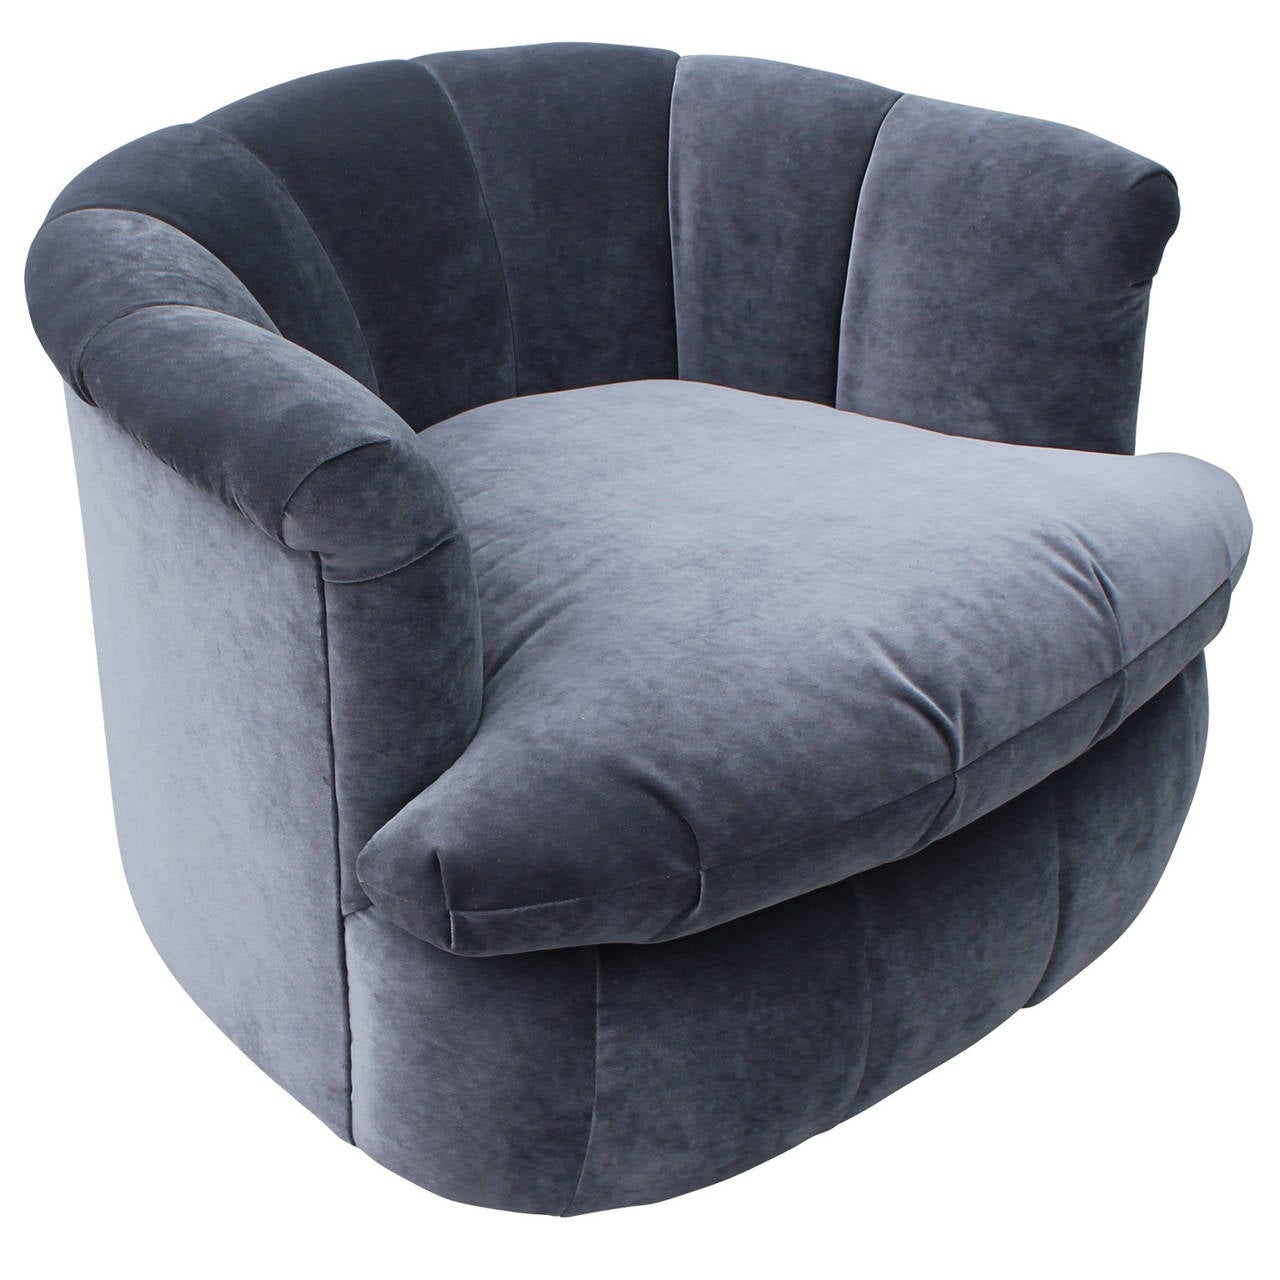 Plush Pair Of Grey Velvet Swivel Chairs At 1stdibs